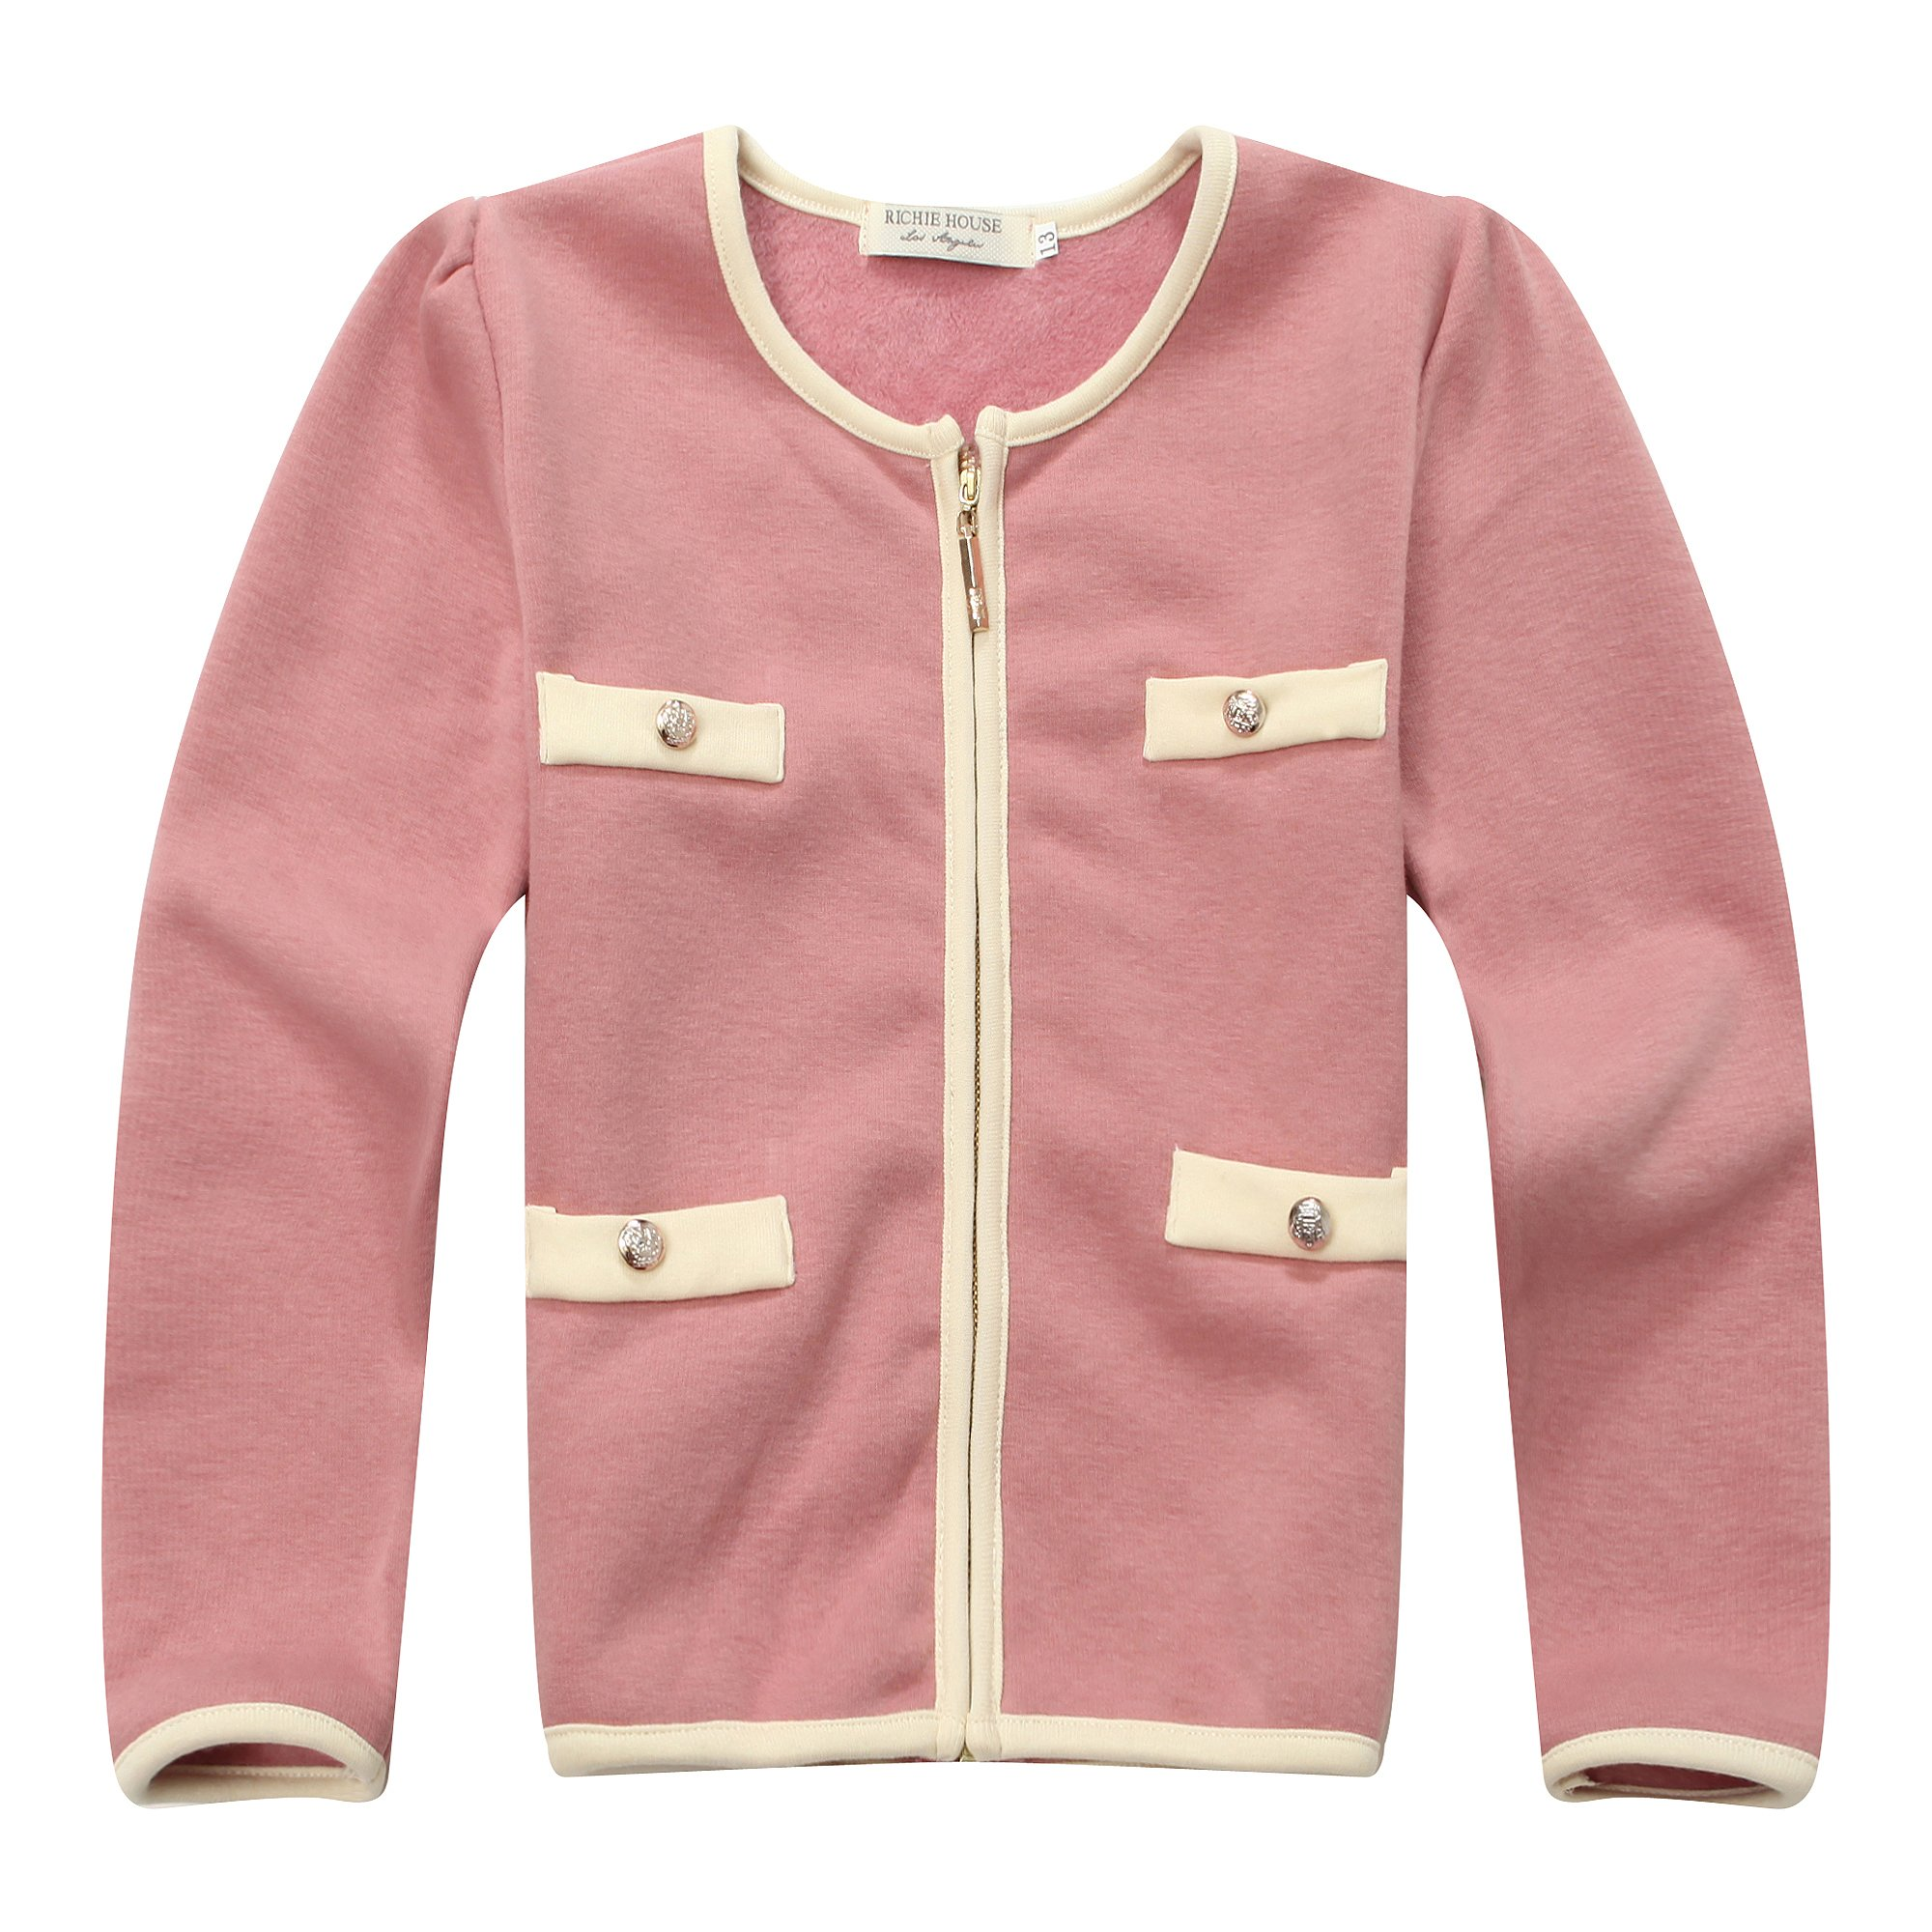 Richie House Girl's Sweet Coat with Fake Pockets RH1286-C-6/7